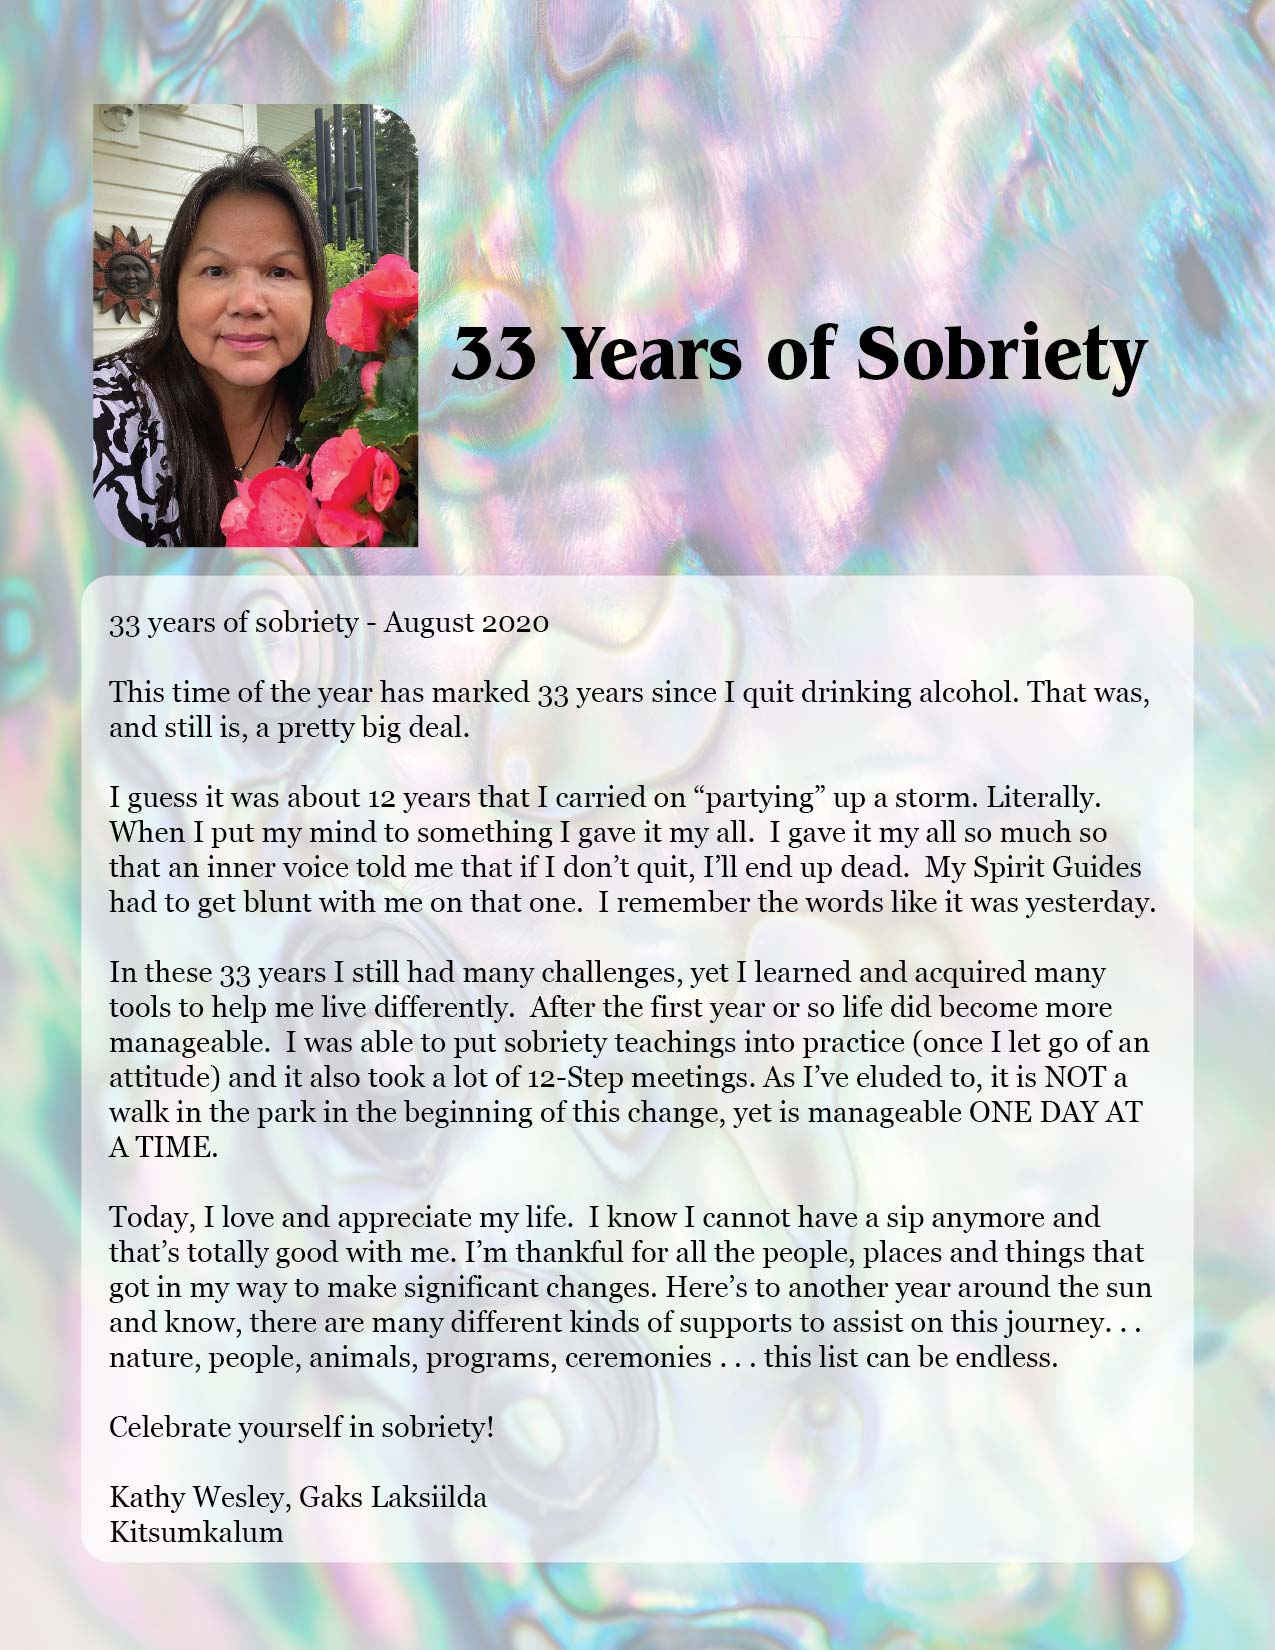 33 Years of Sobriety